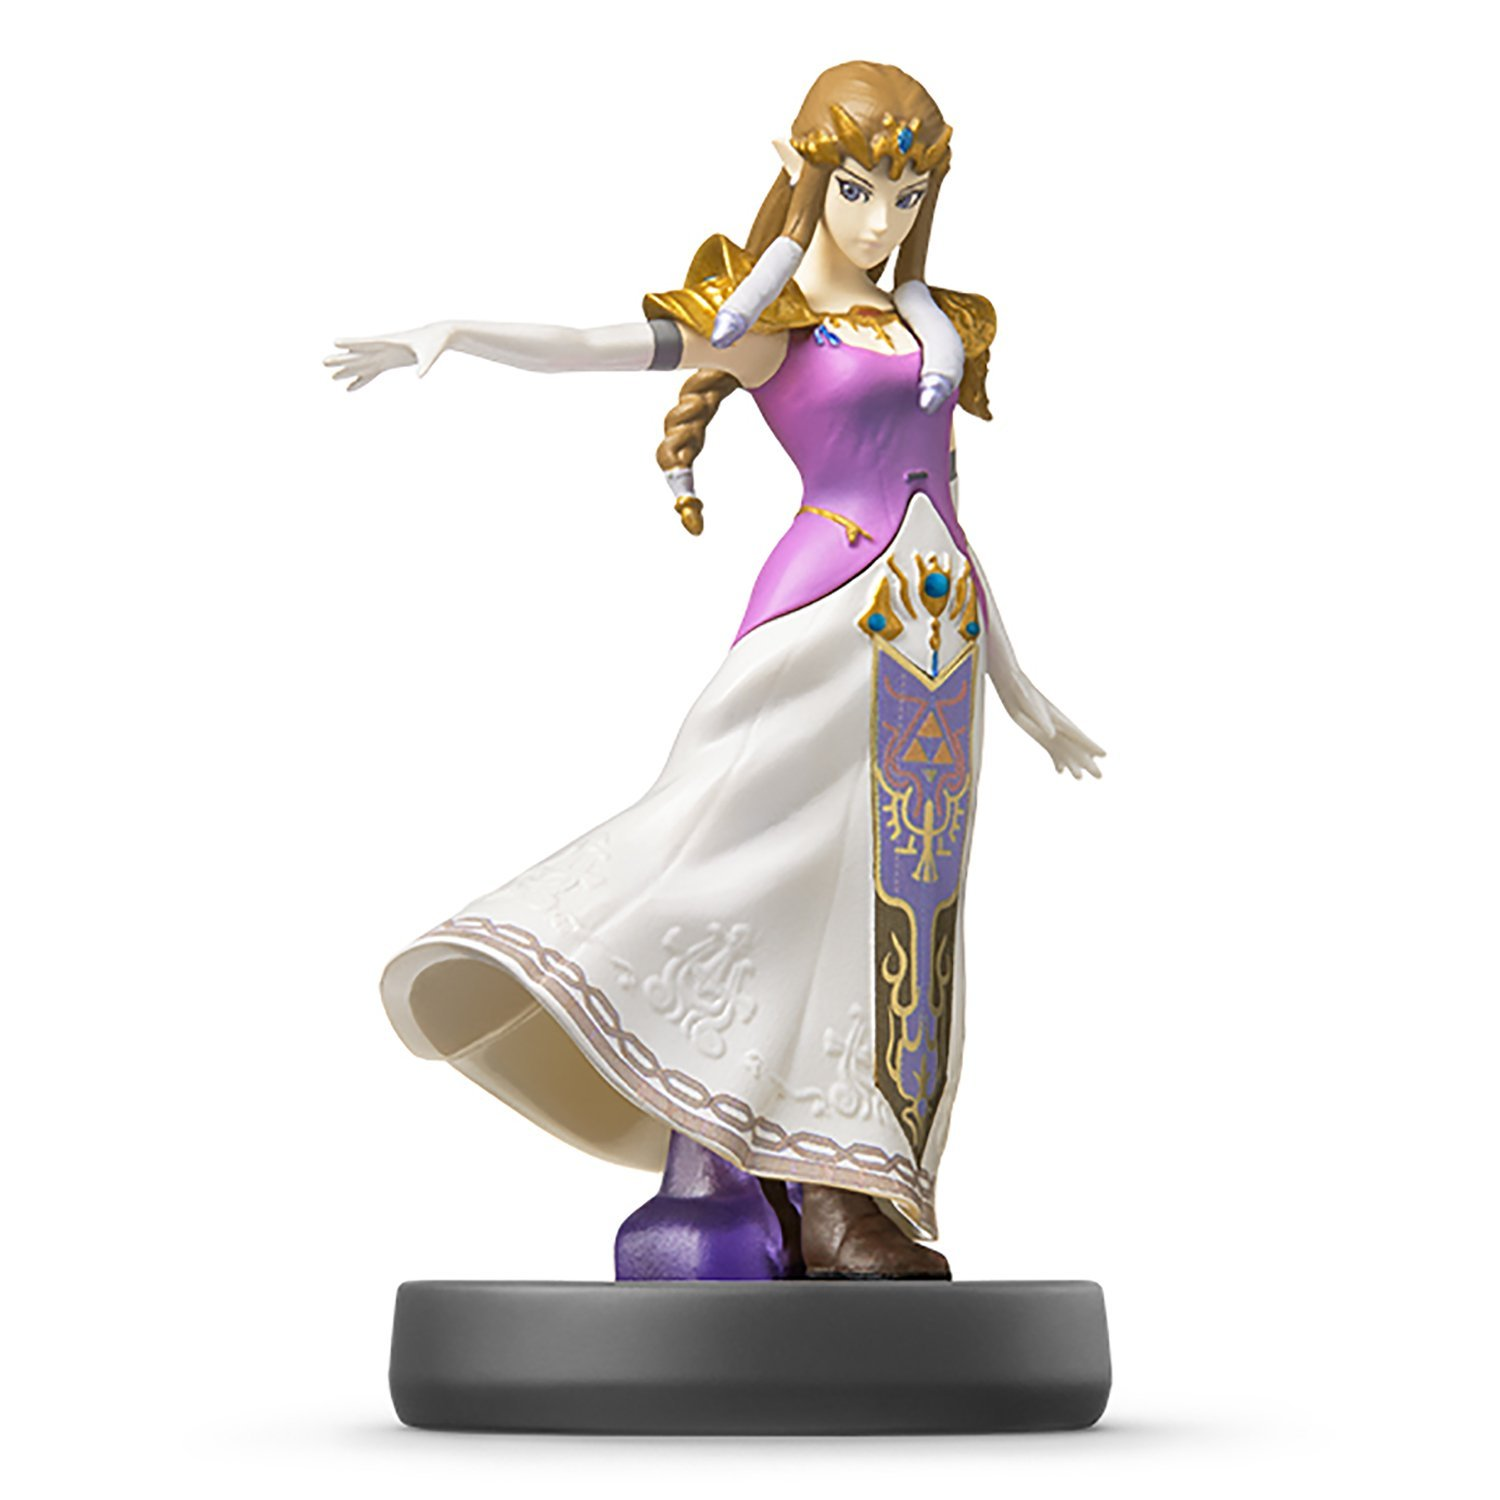 Wii U Amiibo Zelda (Super Smash Bros. Series)